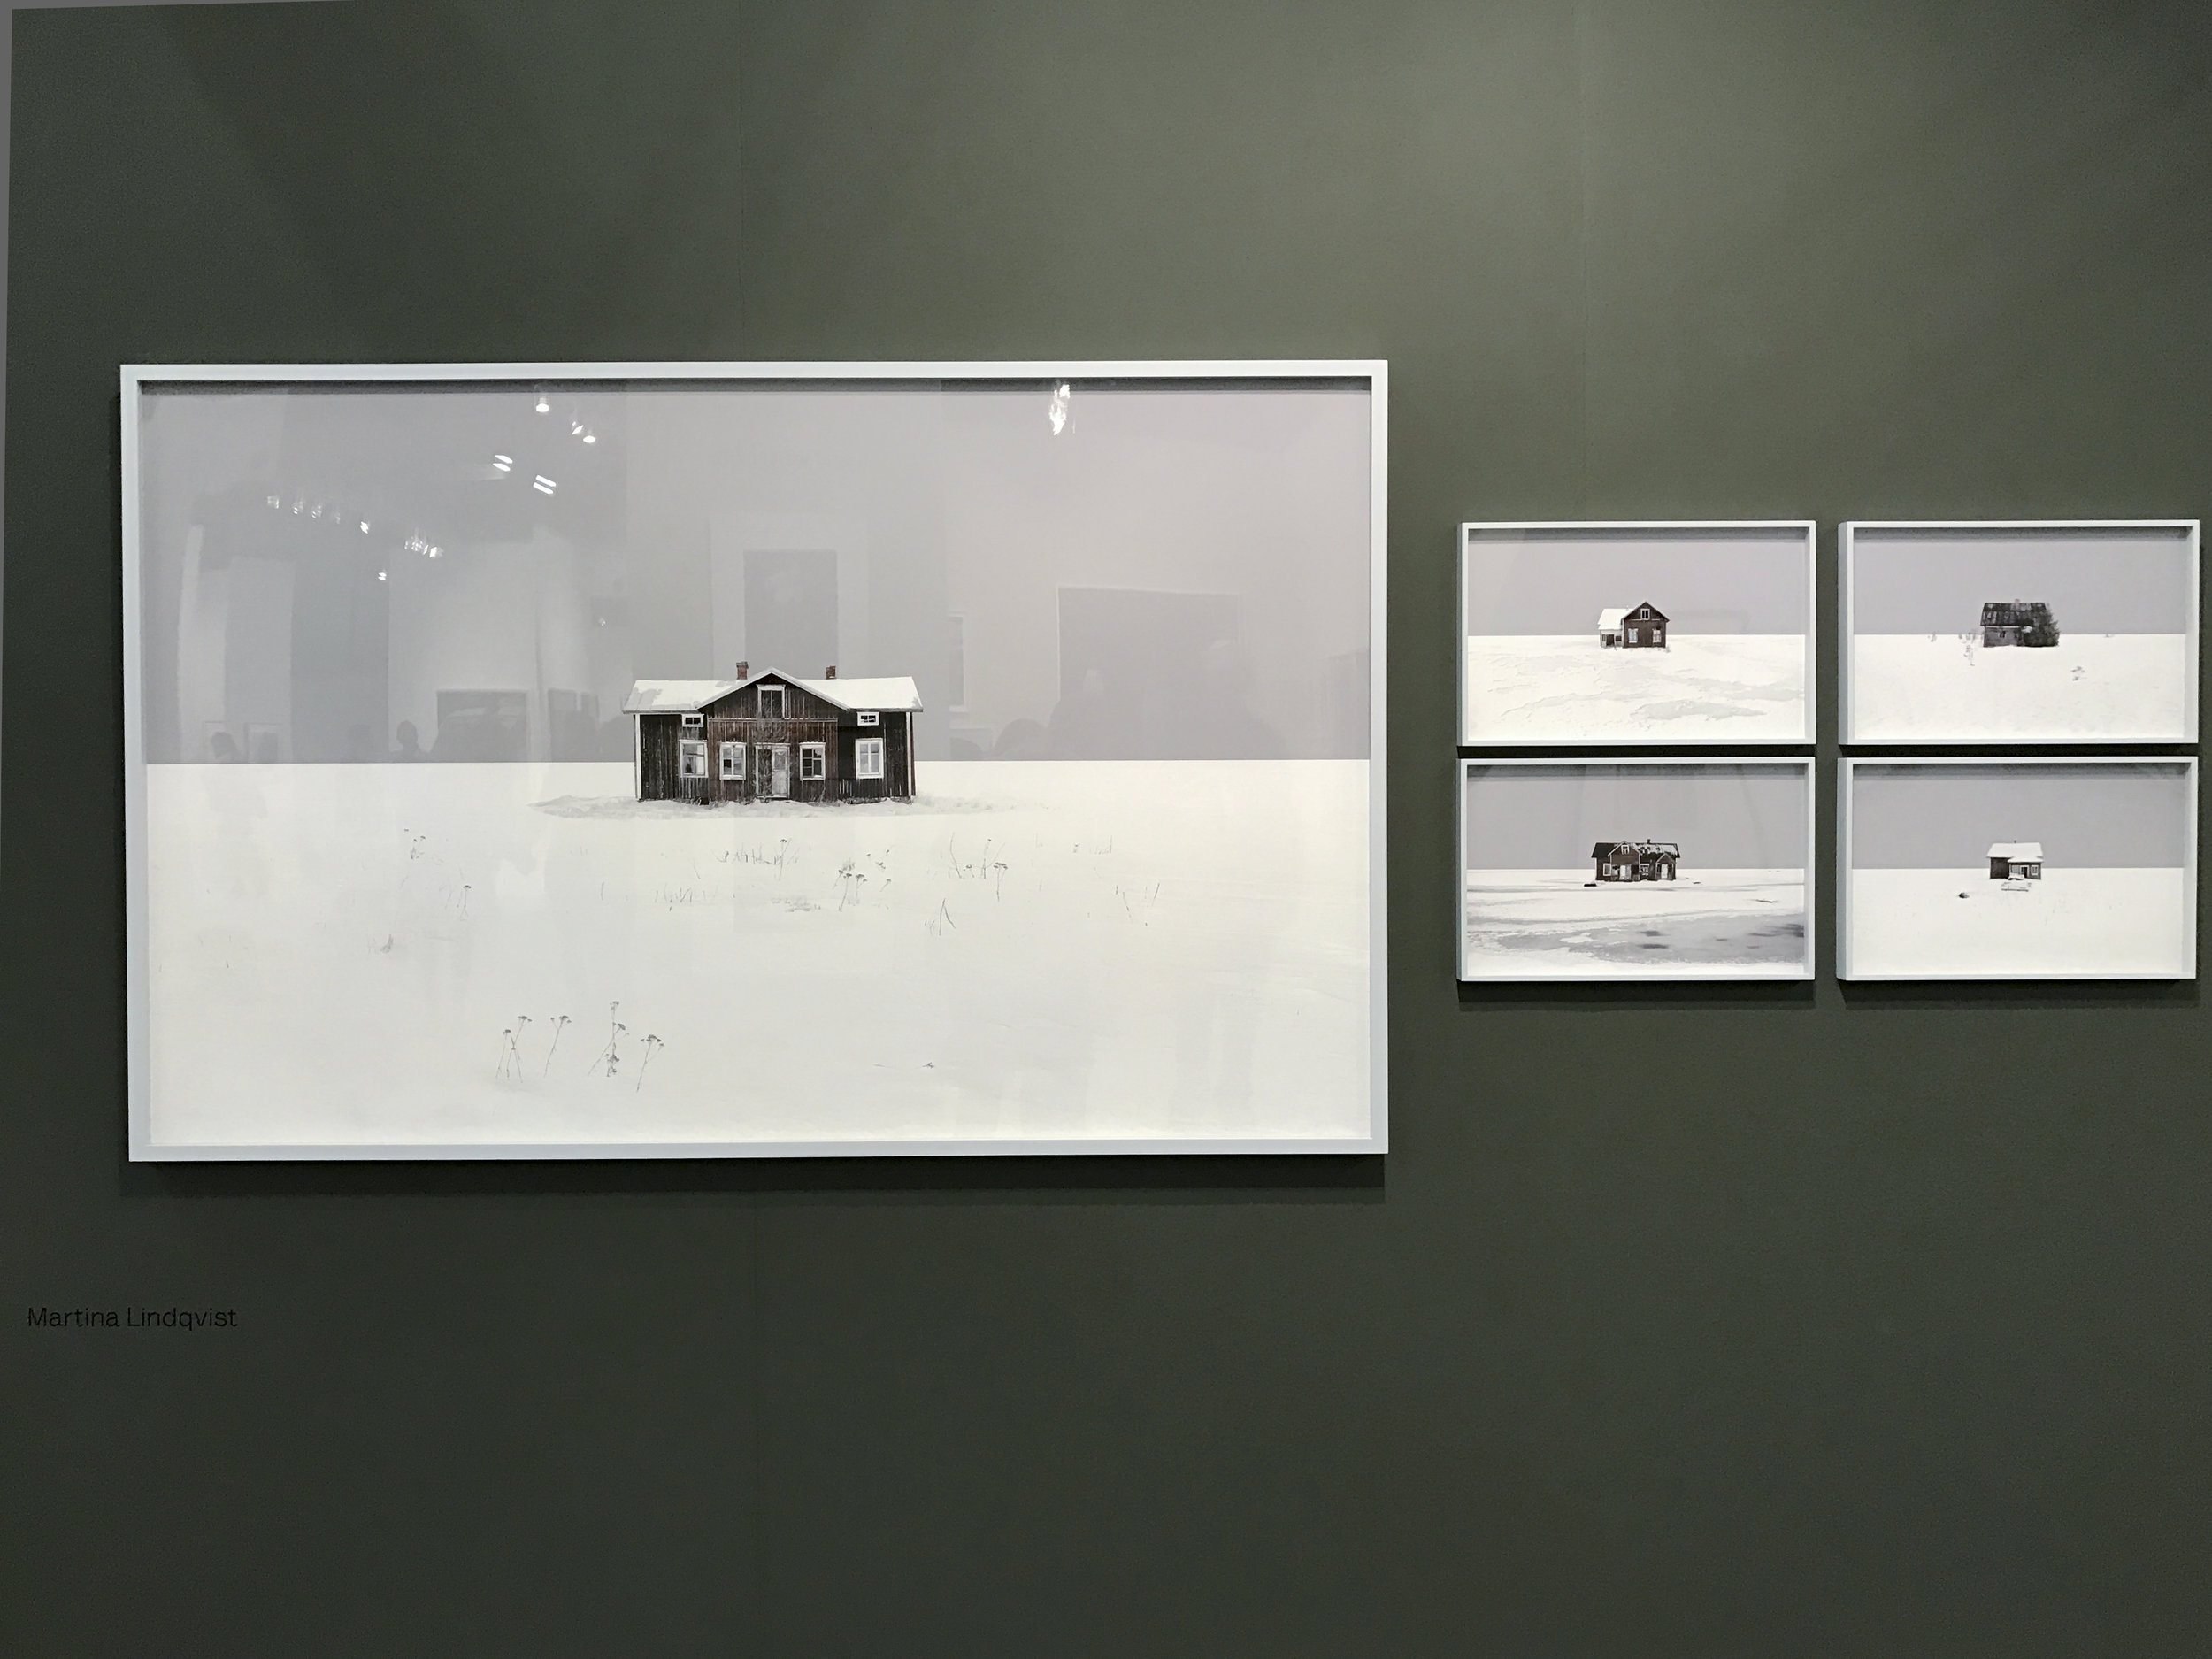 Untitled  from the series  Neighbours , Martina Lindqvist, 2013, Archival pigment print, 12 x 19.5 inches (works on the right side). On view at Booth 801.